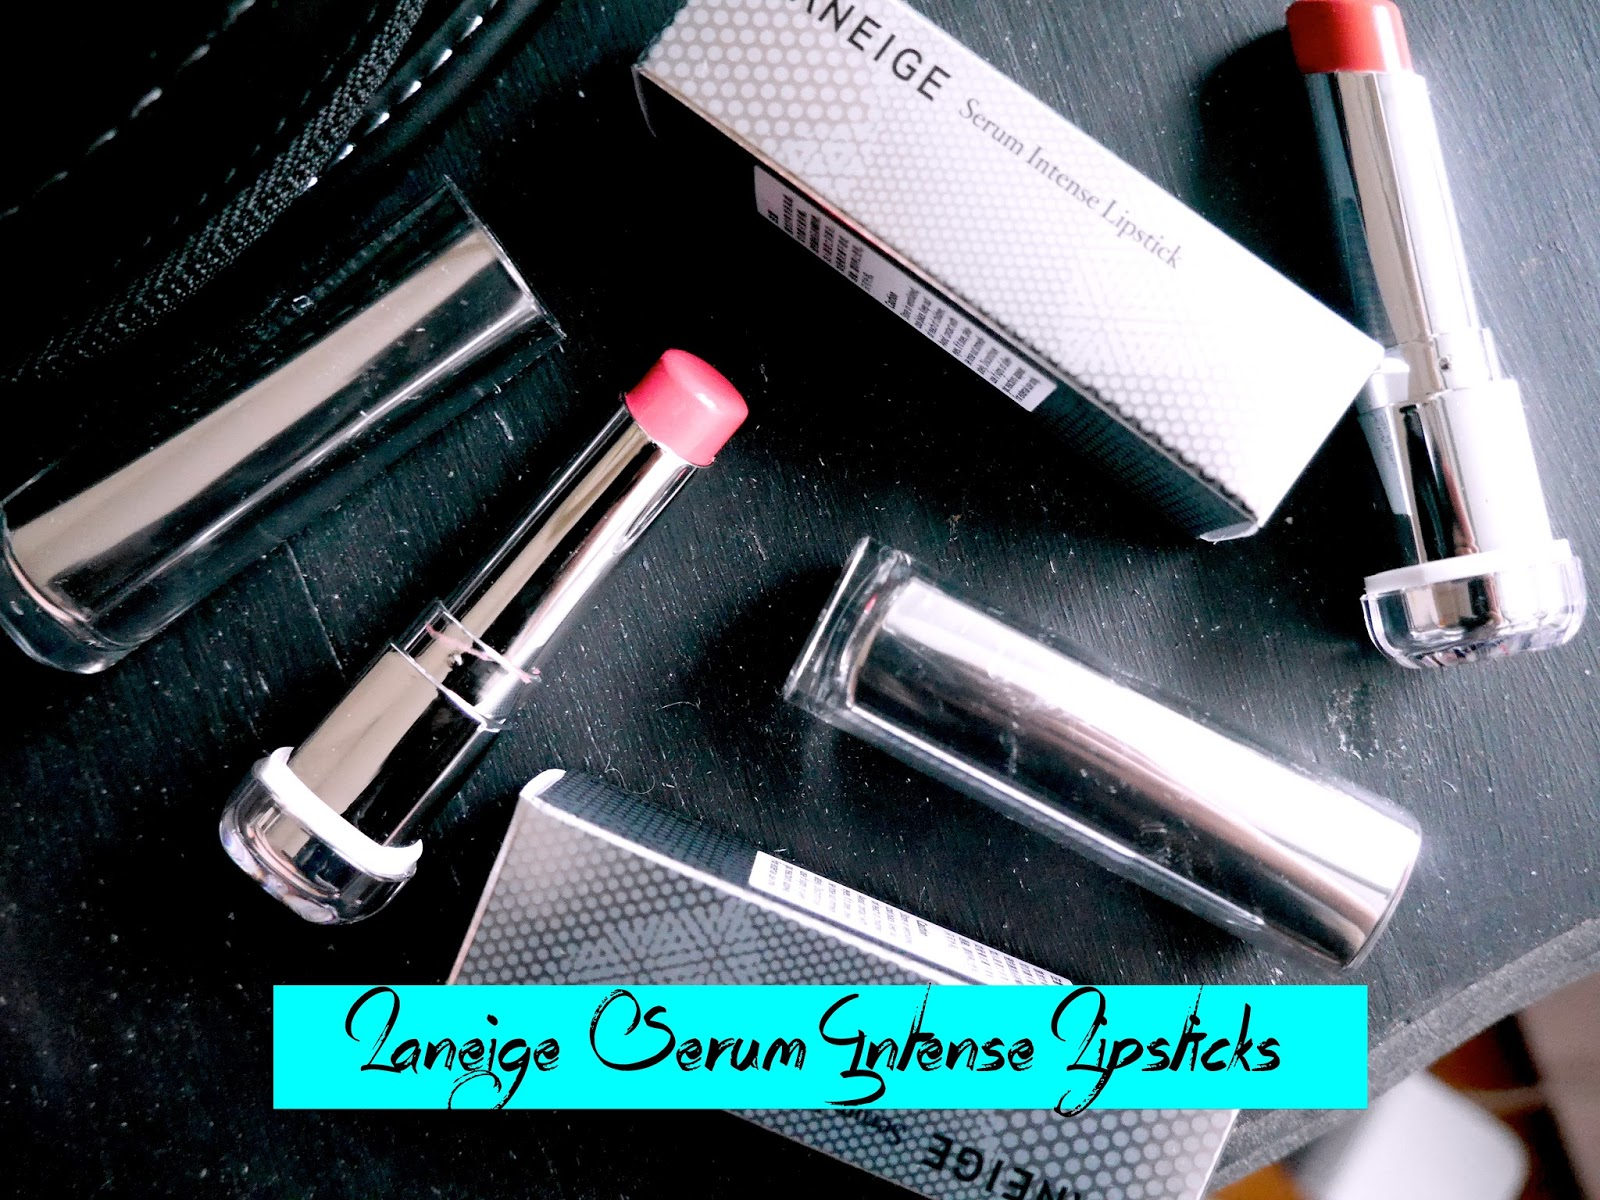 laneige serum intense lipstick twinkle coral flash pink swatch review